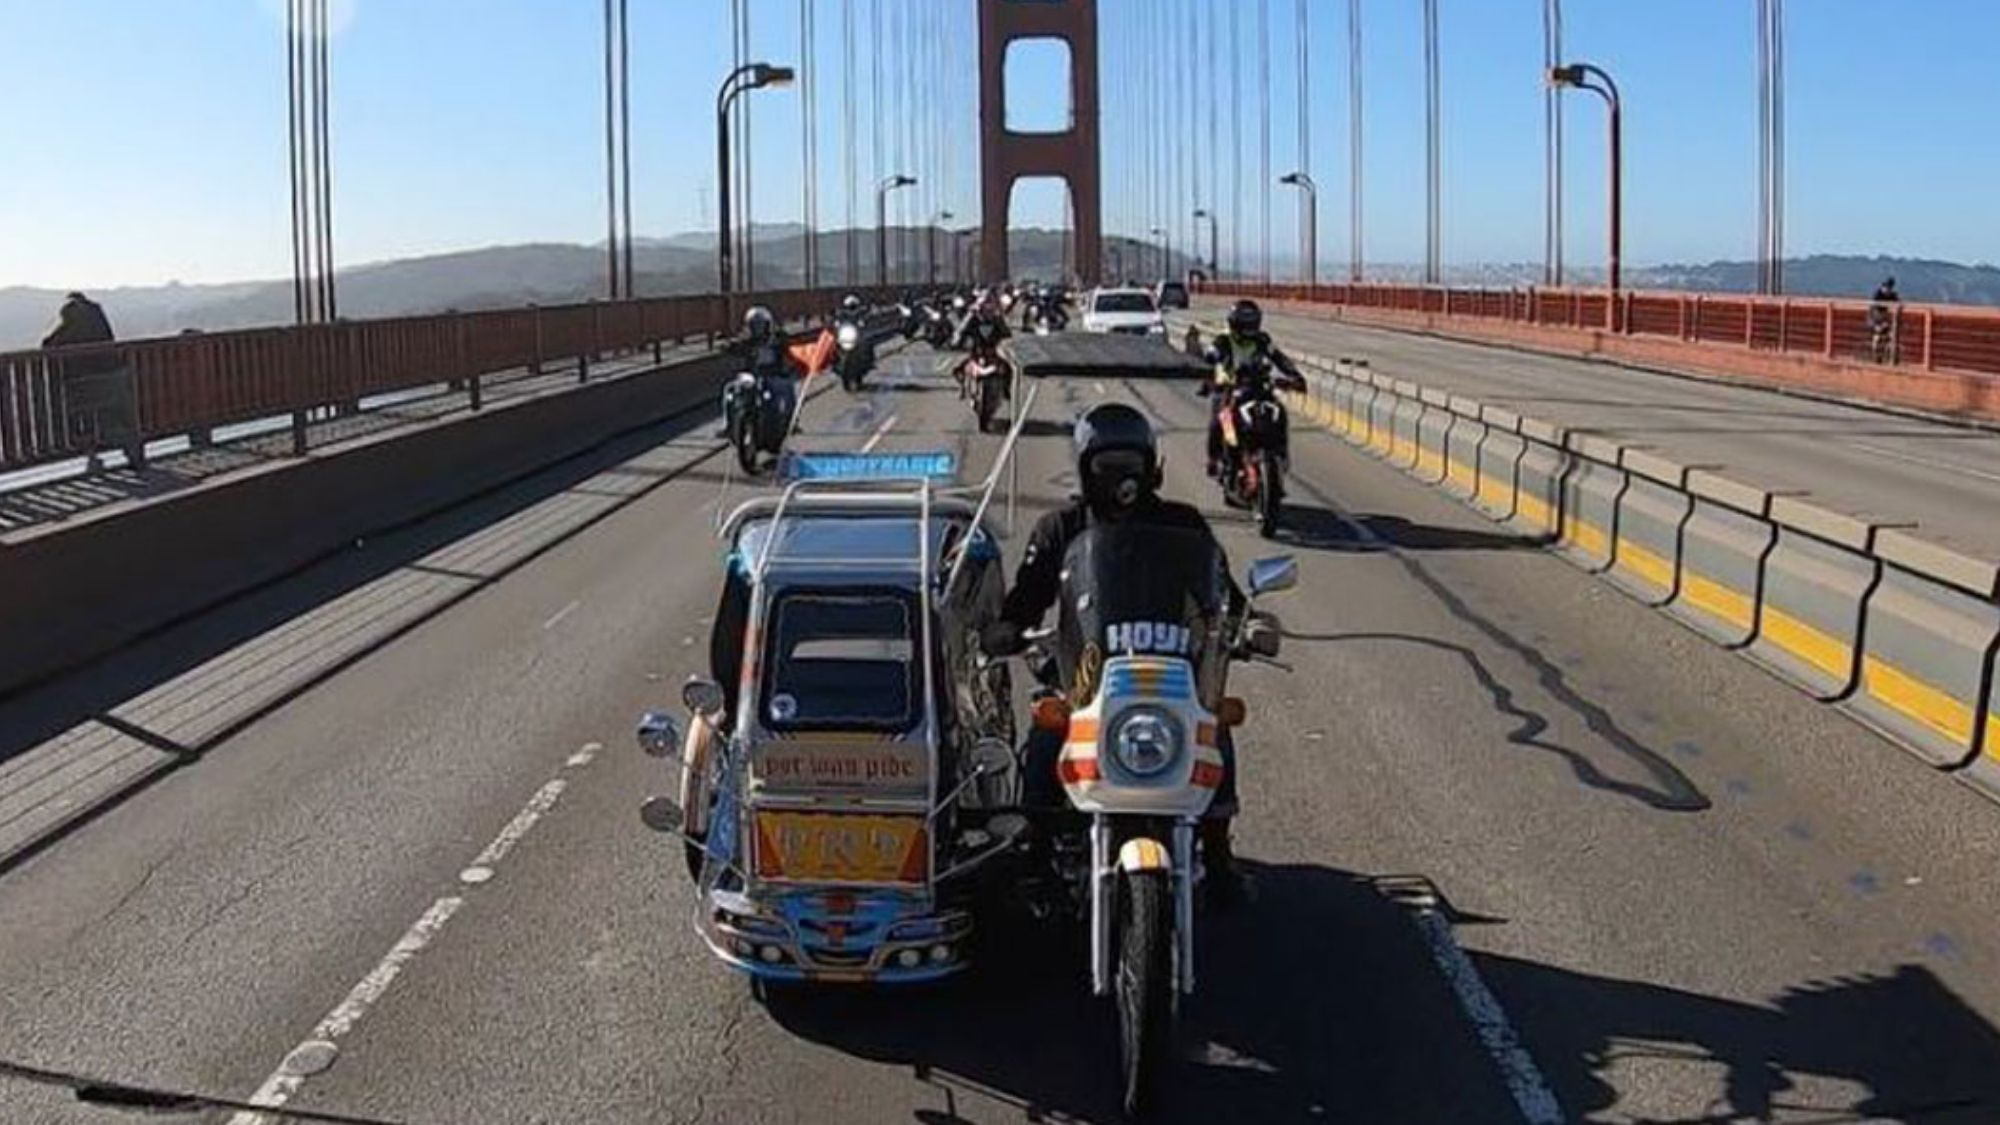 Pinoy tricycle makes historic crossing of Golden Gate Bridge